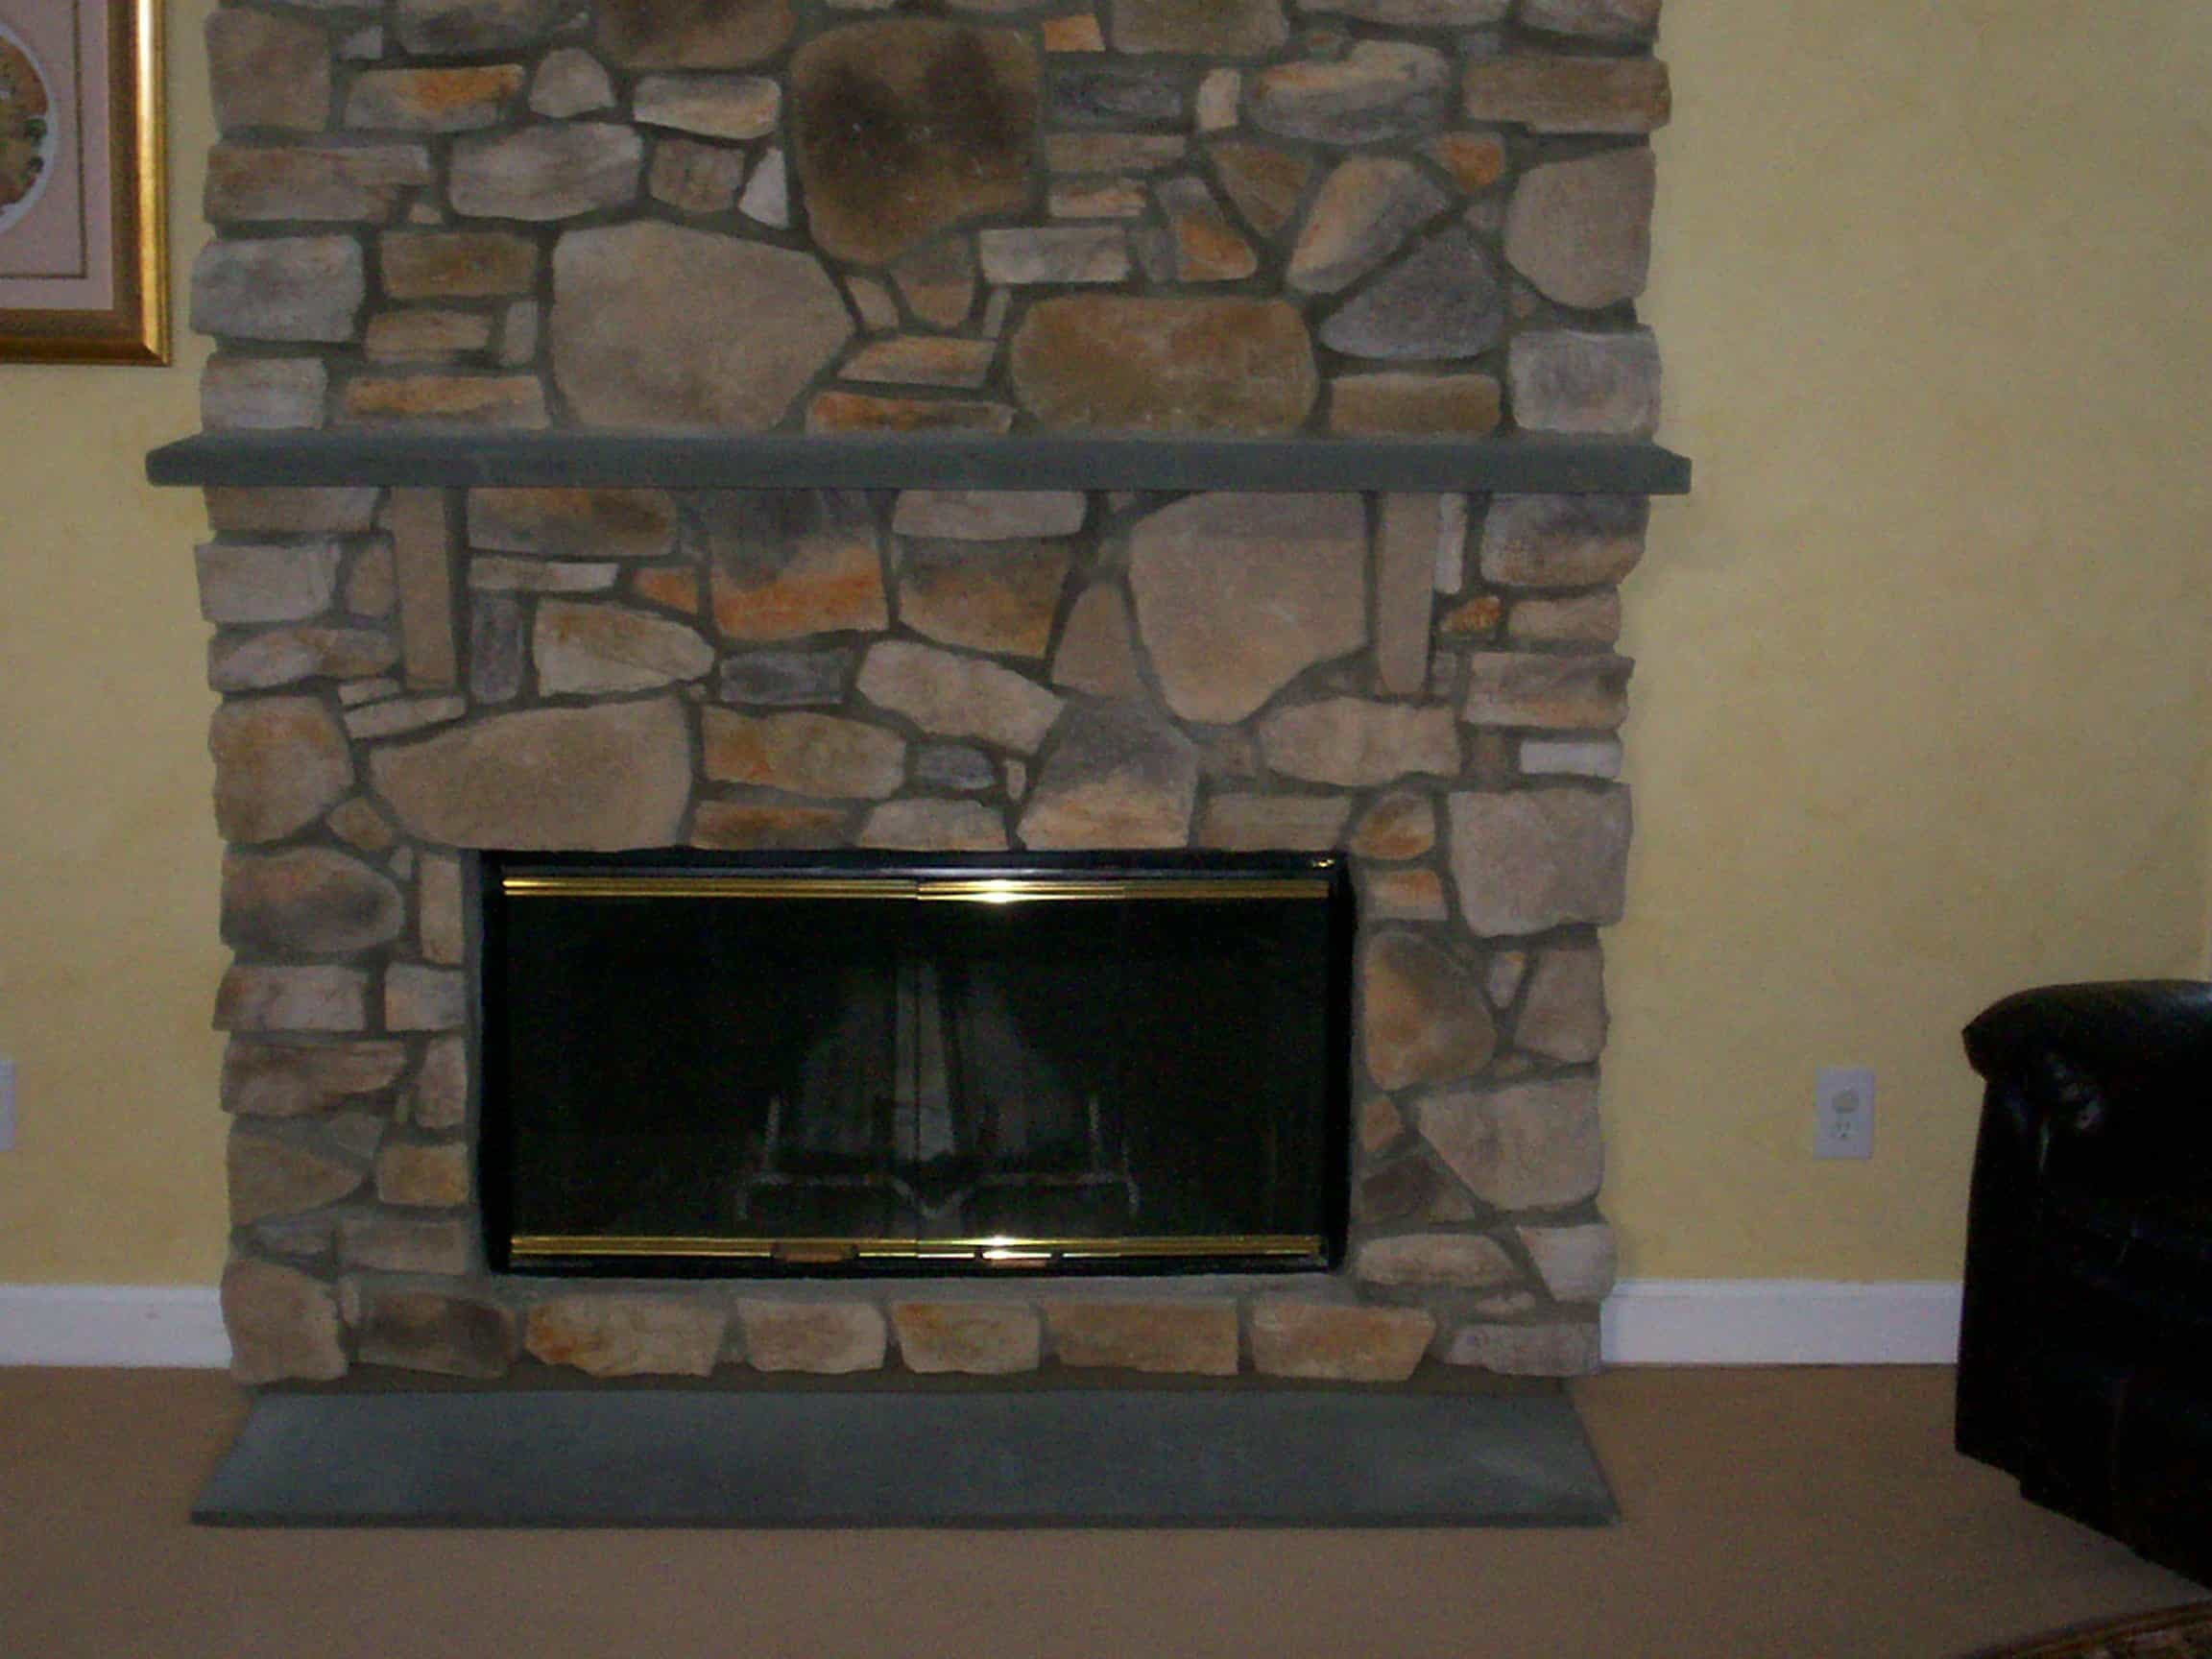 robinson flagstone hearths and mantels robinson flagstone rh robinsonflagstone com bluestone fireplace hearthstone cost Fireplace Hearths Tile Ideas